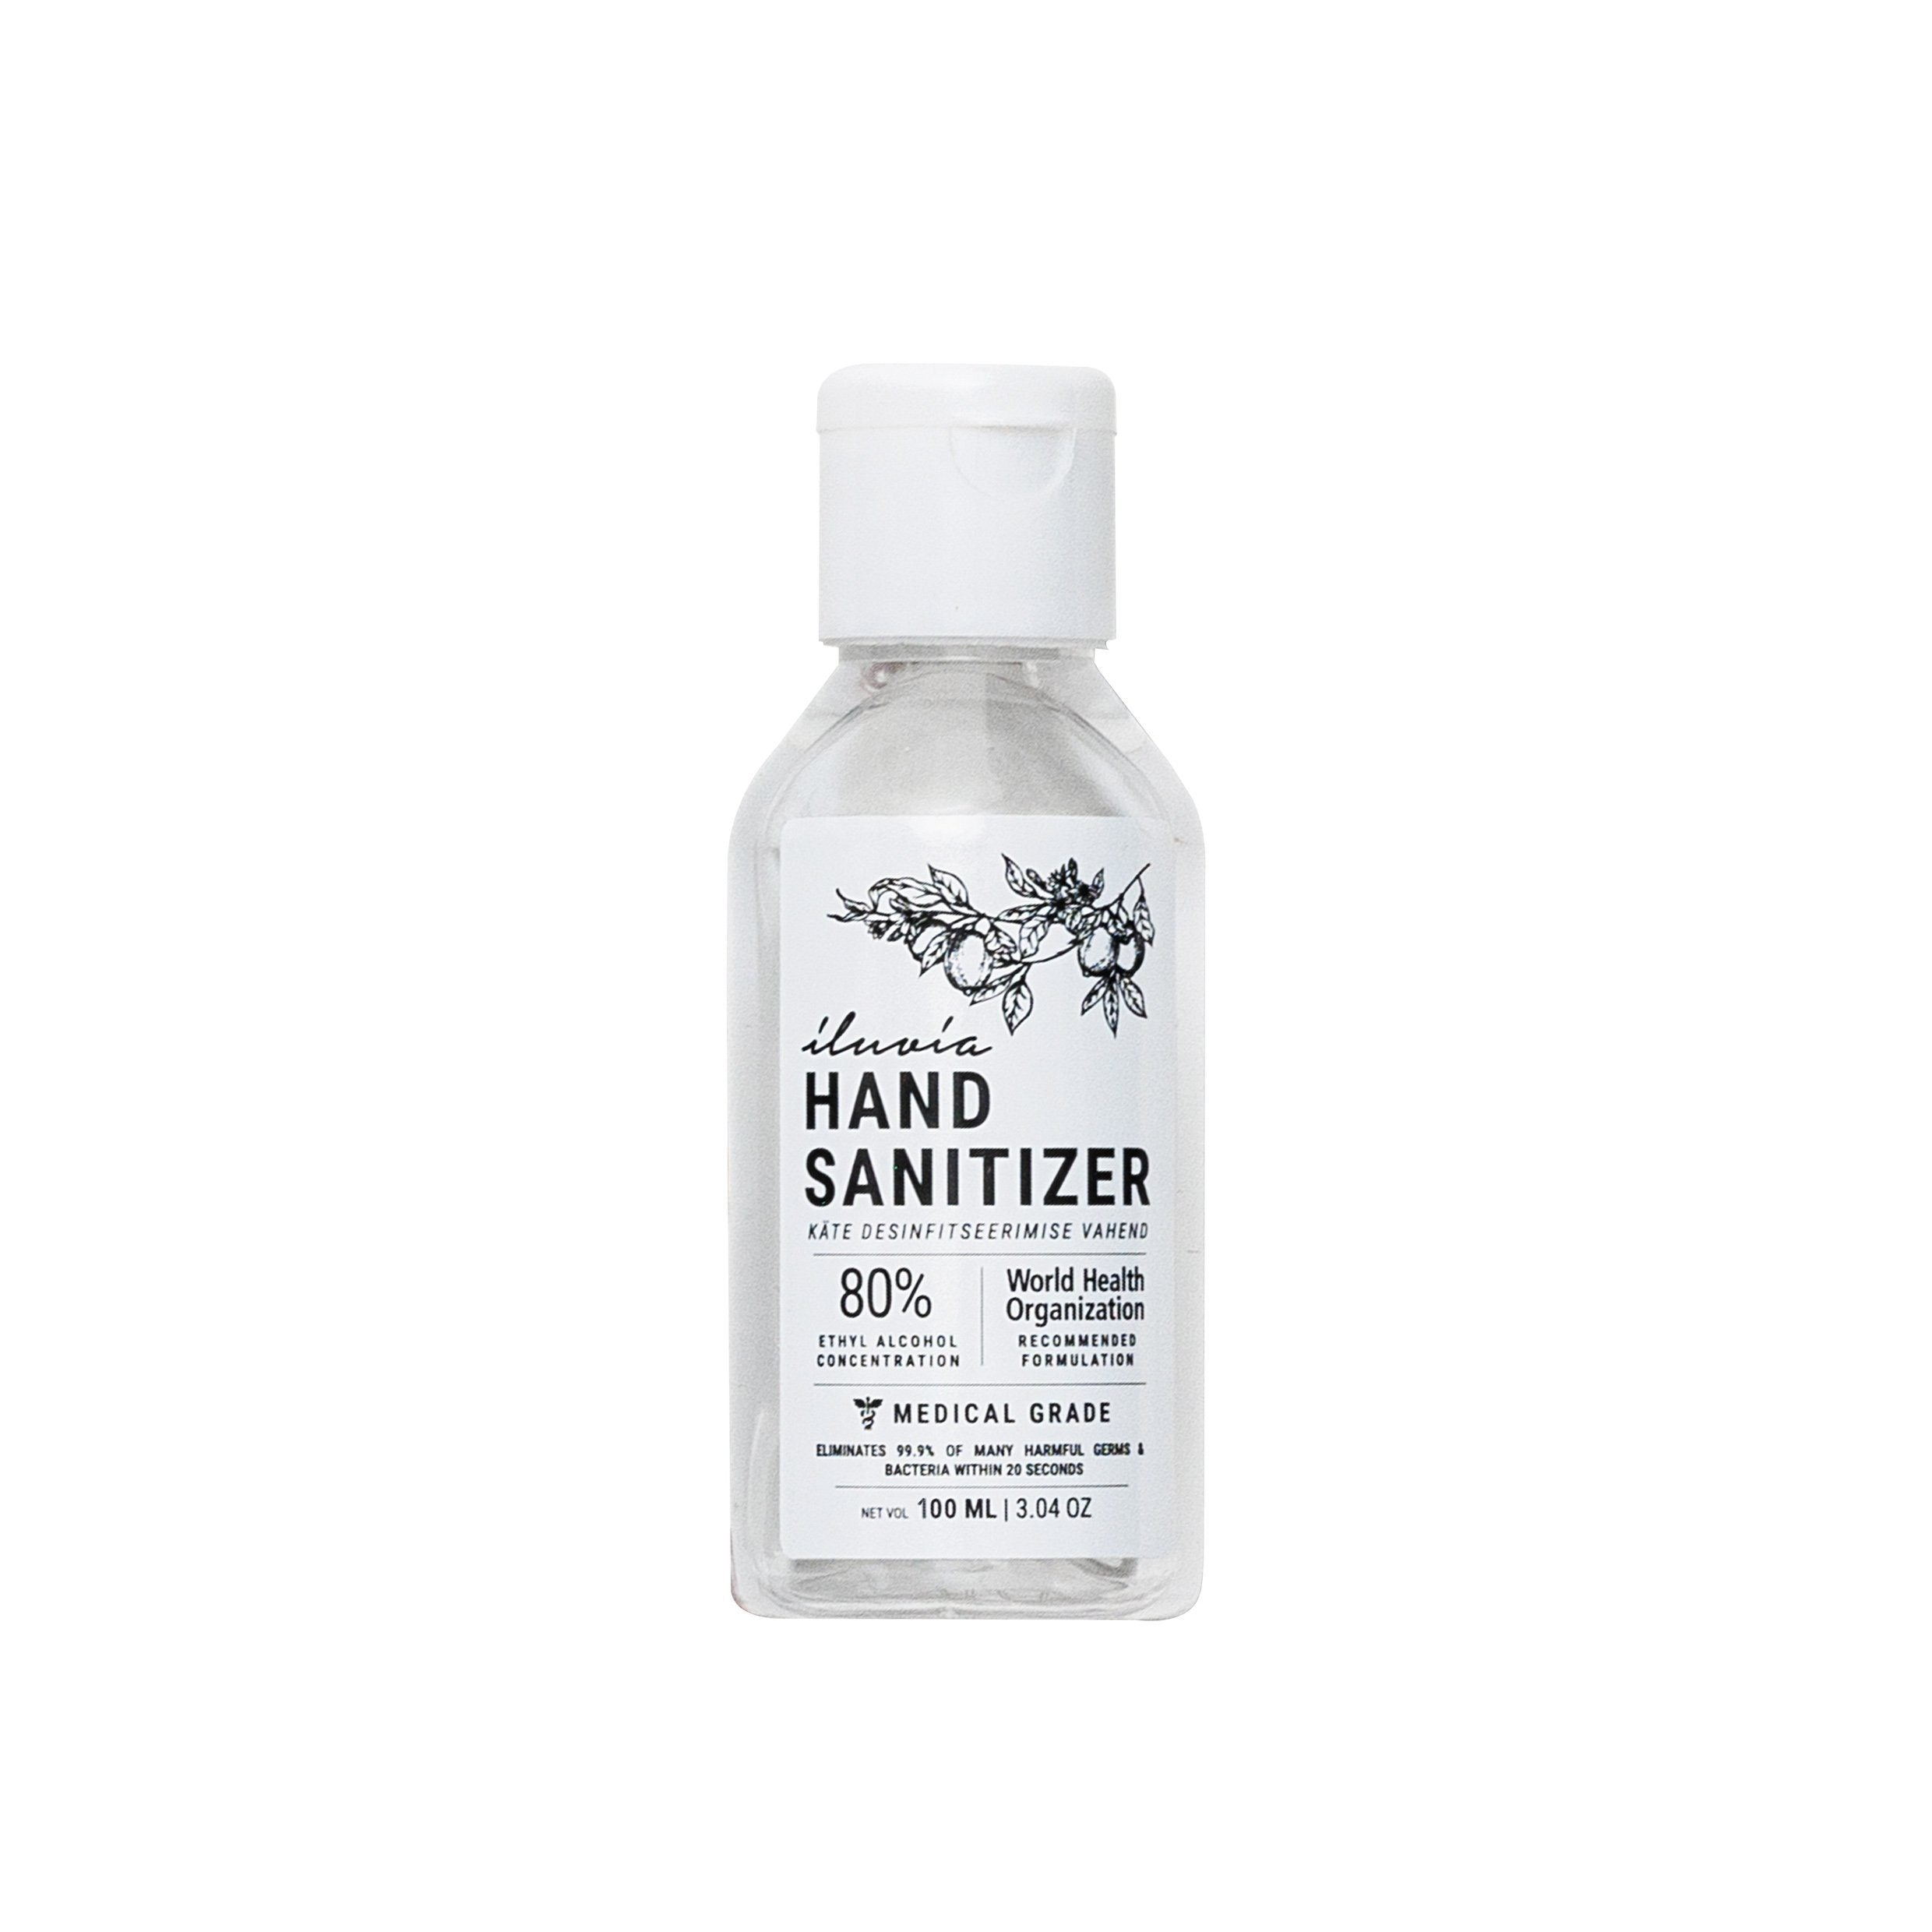 GEL Sanitizer - 100ml - Packs of 6 (80% Alcohol)